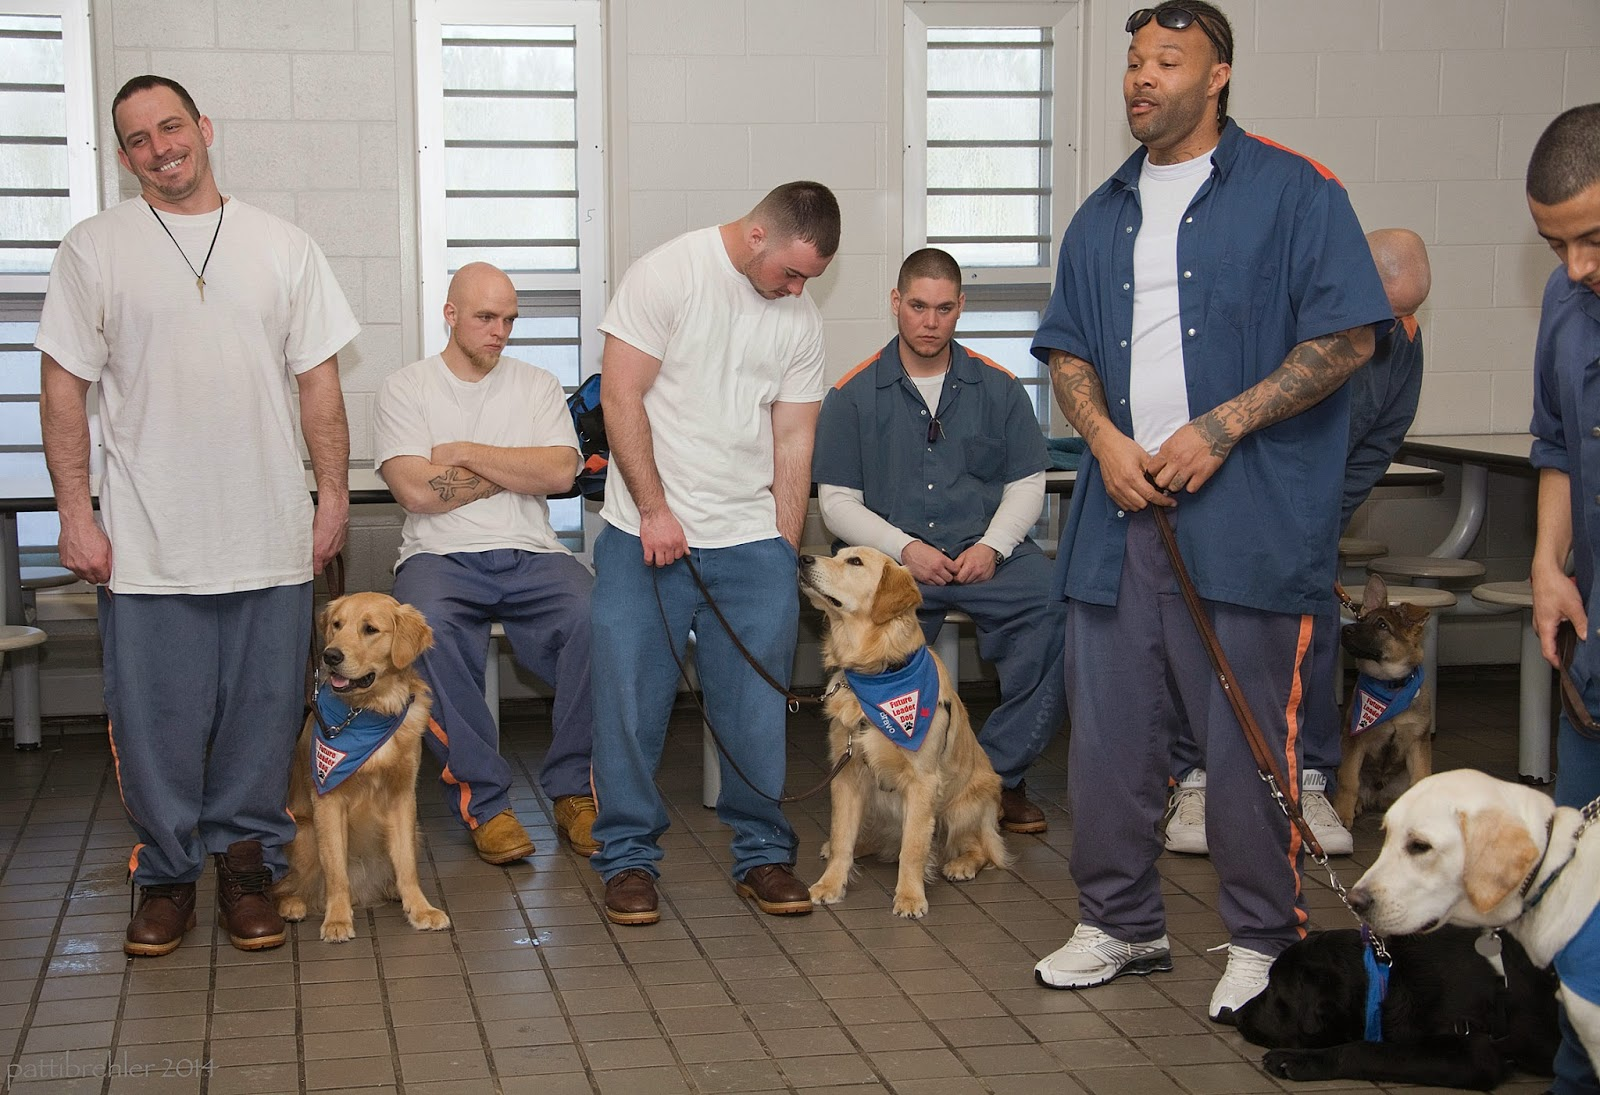 Three men are standing in a row, a fourth is just out of the frame on the right side. Two other men are sitting behind and between the standing me. They are wearing prison blue pants and white t-shirts. The third and forth man (from left to right) are wearing the prison blue shirts over their t-shirts. The first two men have golden retriever puppies (almost adult) sitting on their left sides, they pups are wearing blue Future Leader Dog bandanas. The third man, and african american, has a black lab that is lying on the floor at his left side. The man just out of the frame has a yellow lab next to him, but you can only see her head. The men sitting down do not have puppies, they are just observing.